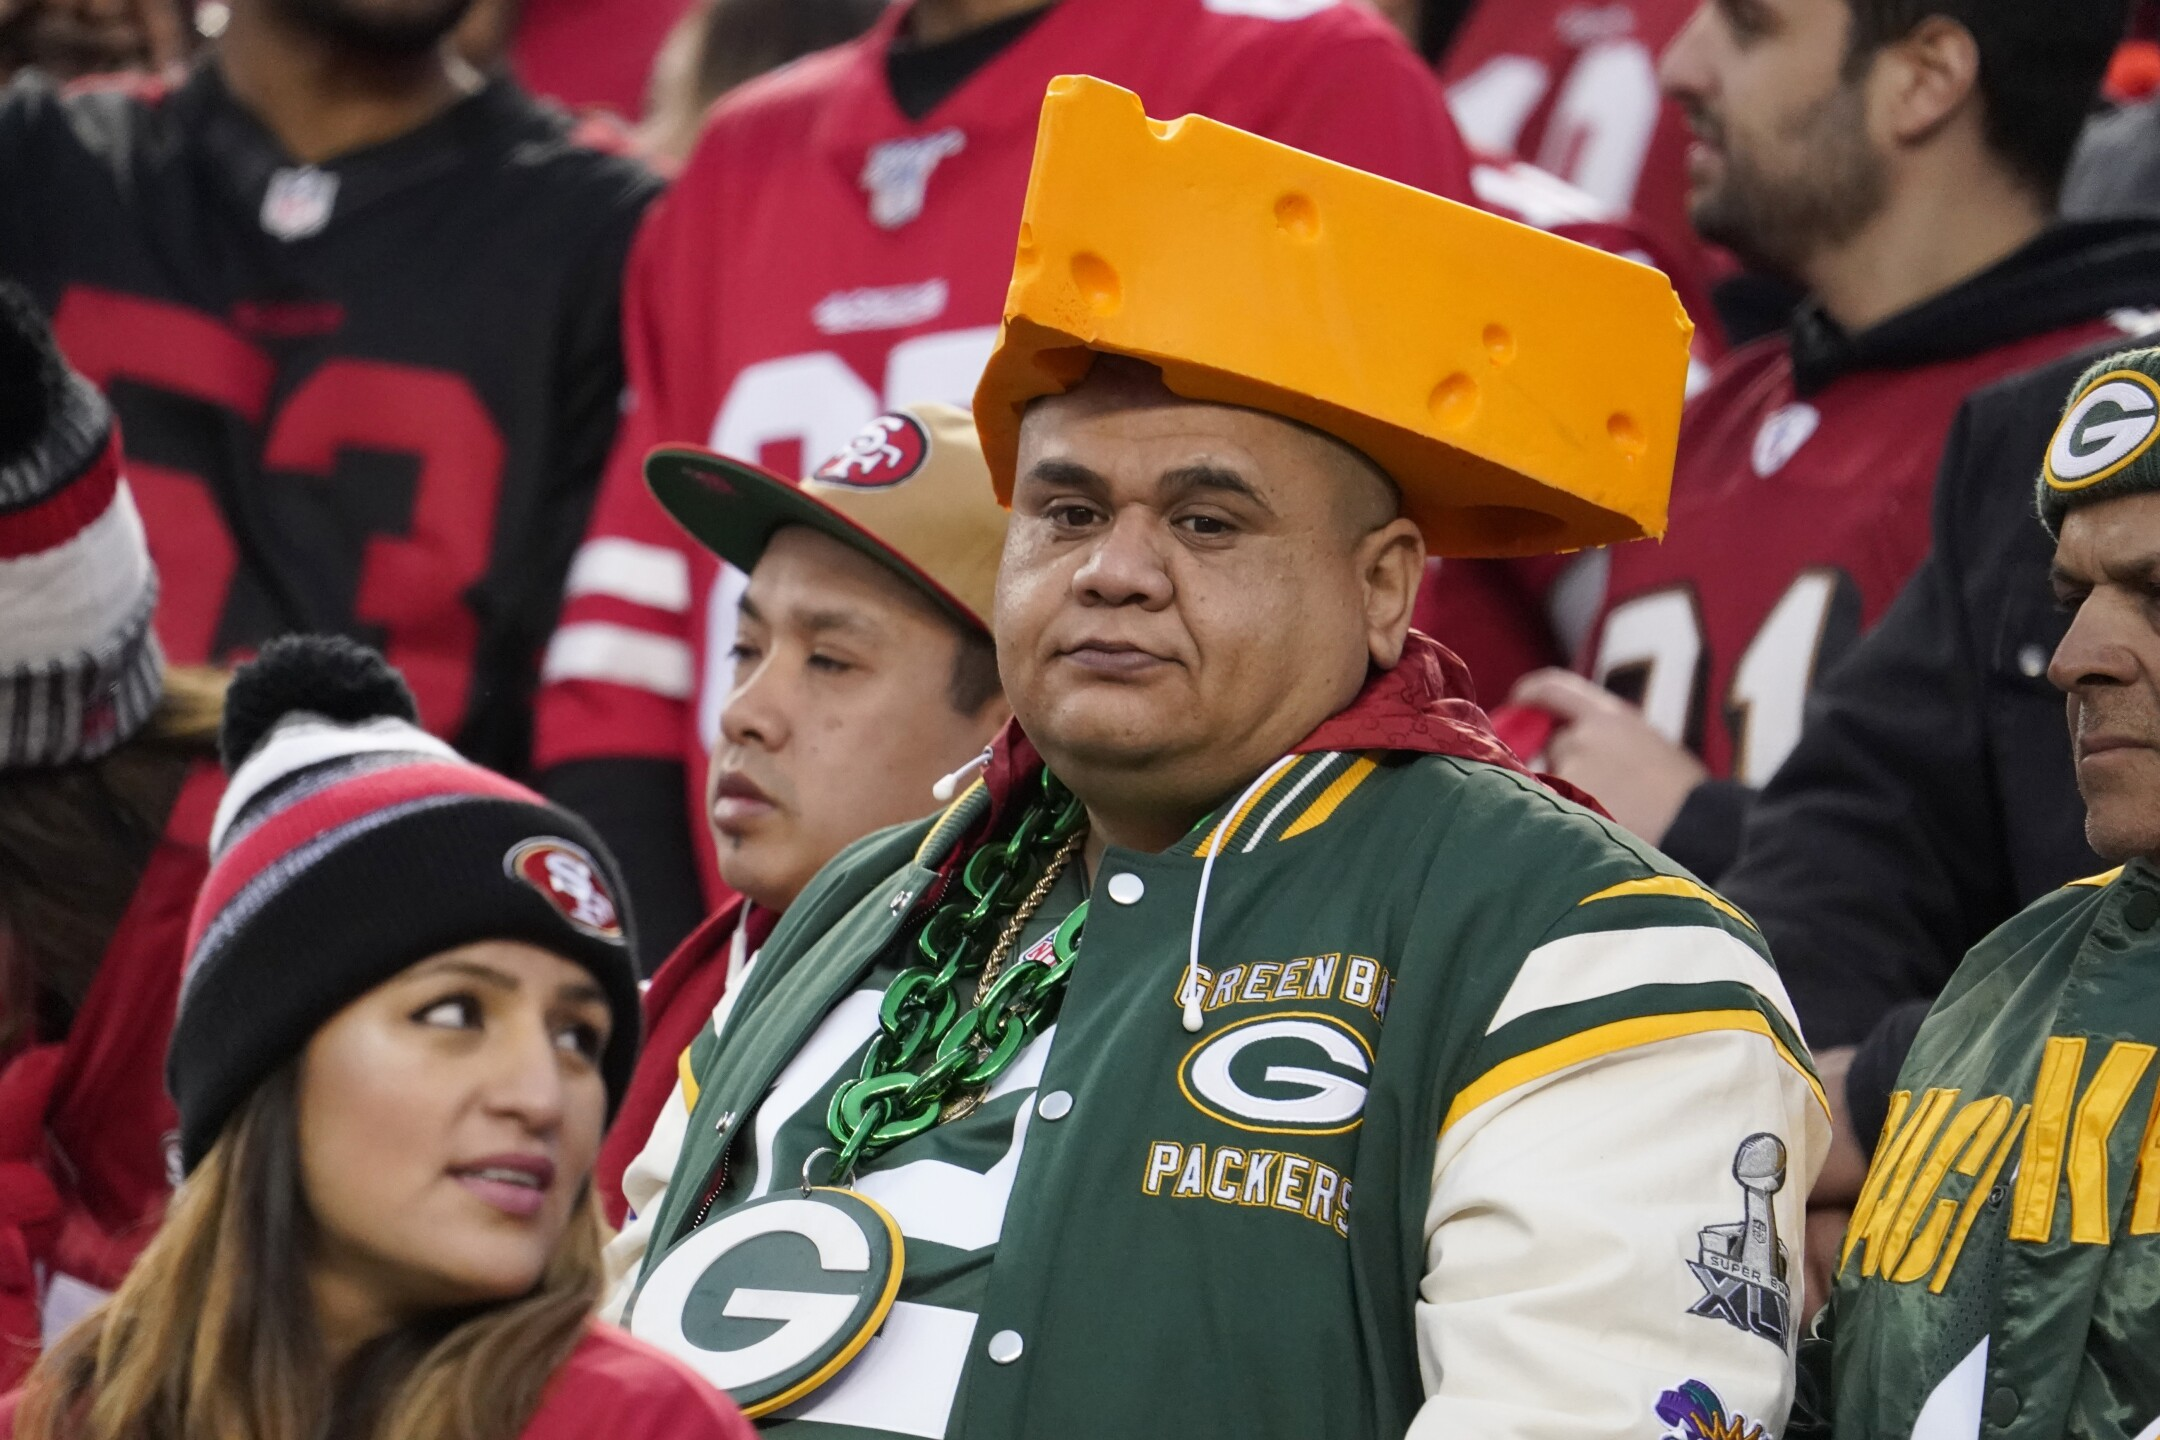 Packers in big trouble in NFC Championship Game [PHOTOS]